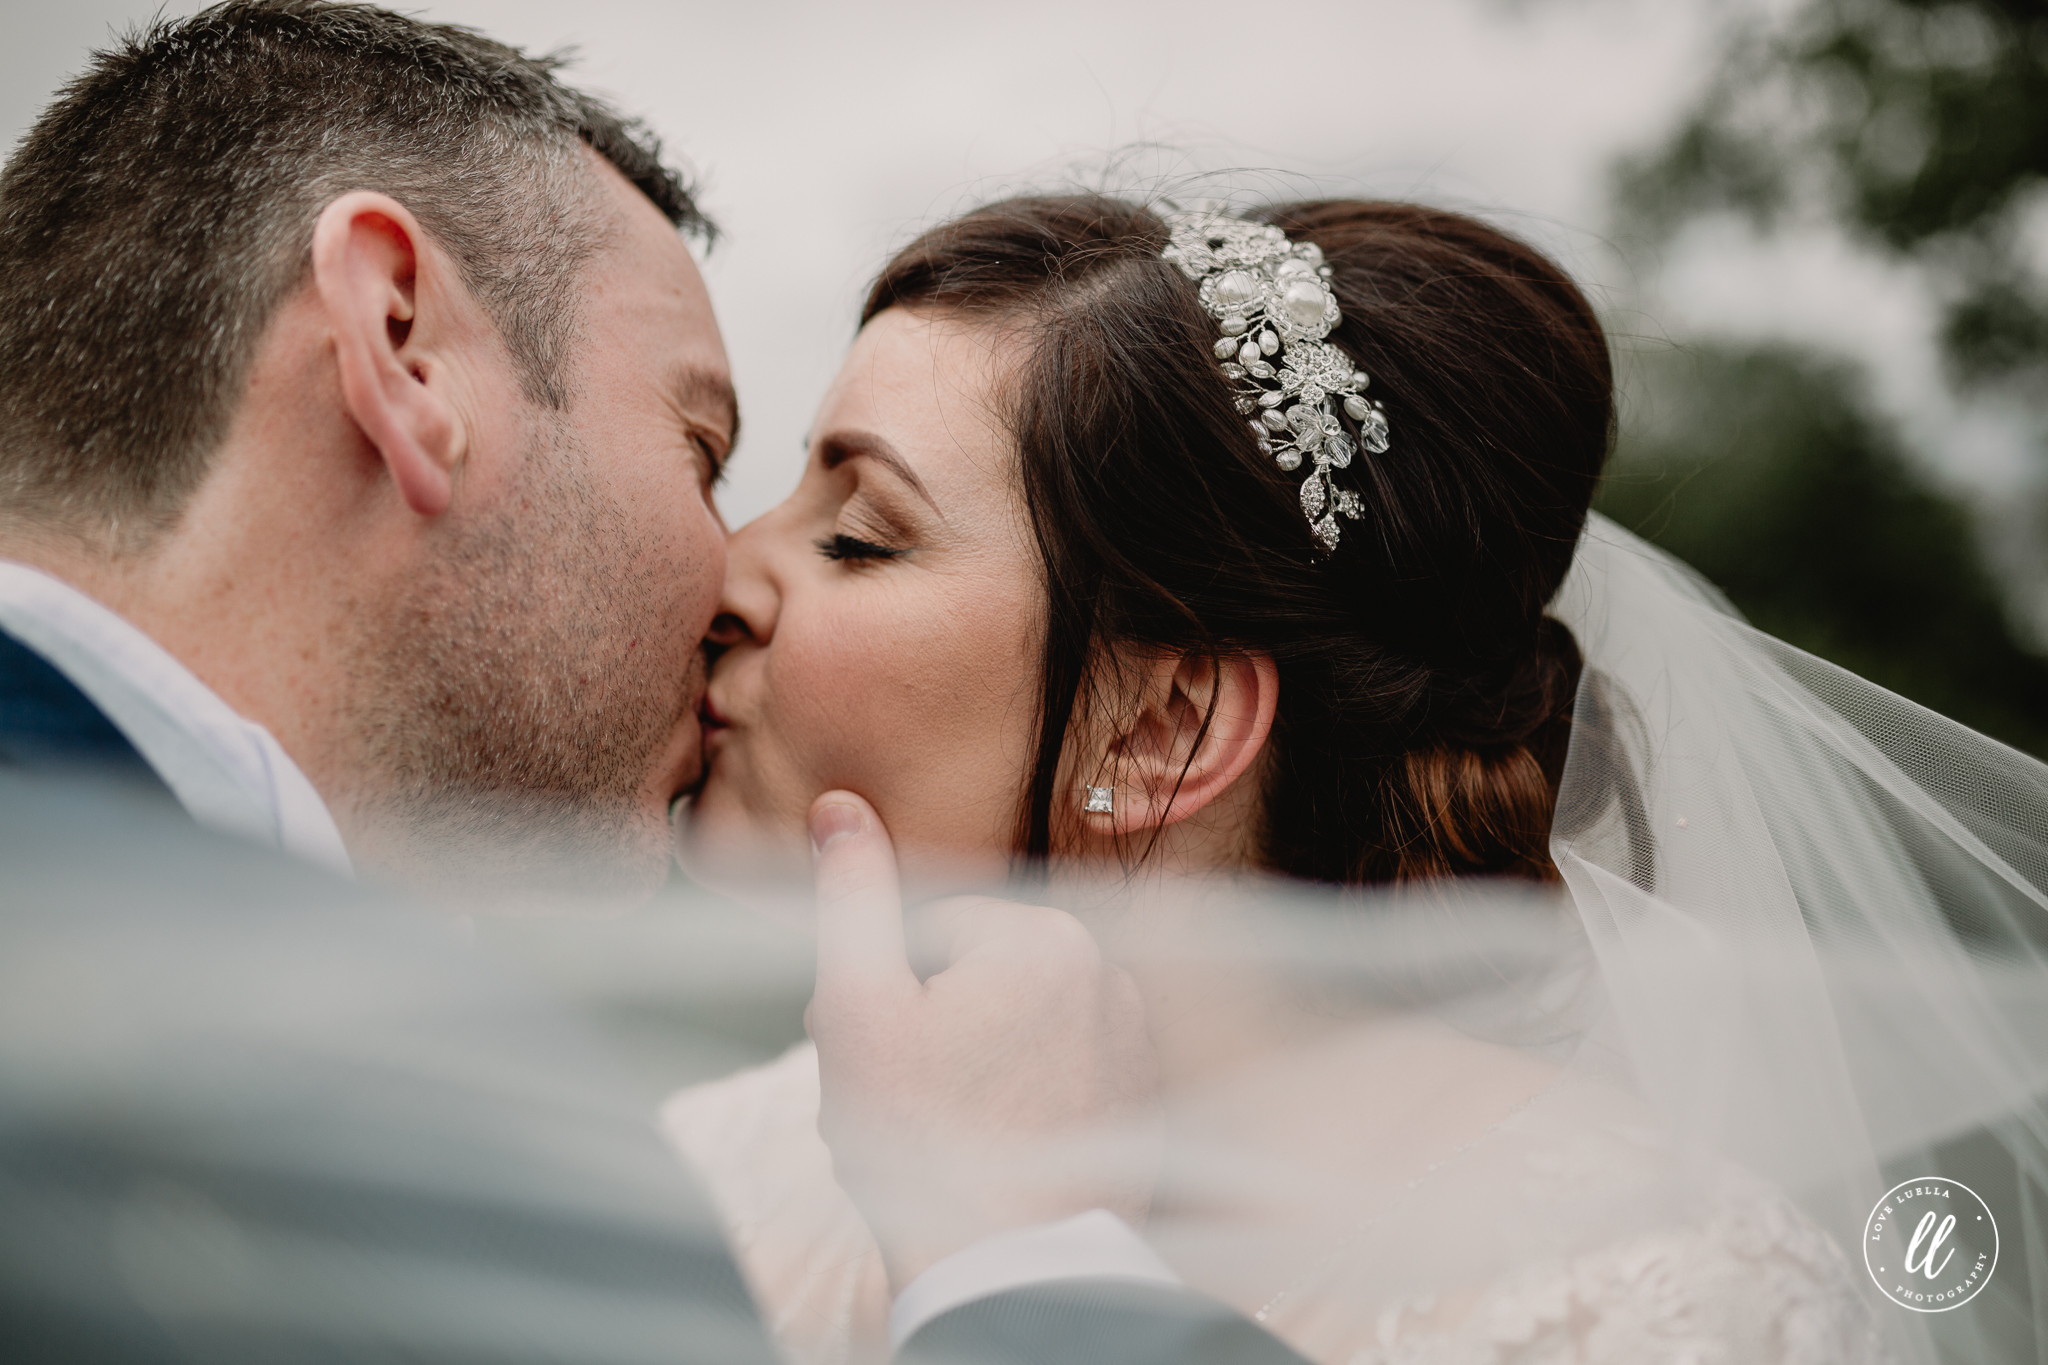 the bride and groom kissing, the grooms thumb resting on the brides cheek